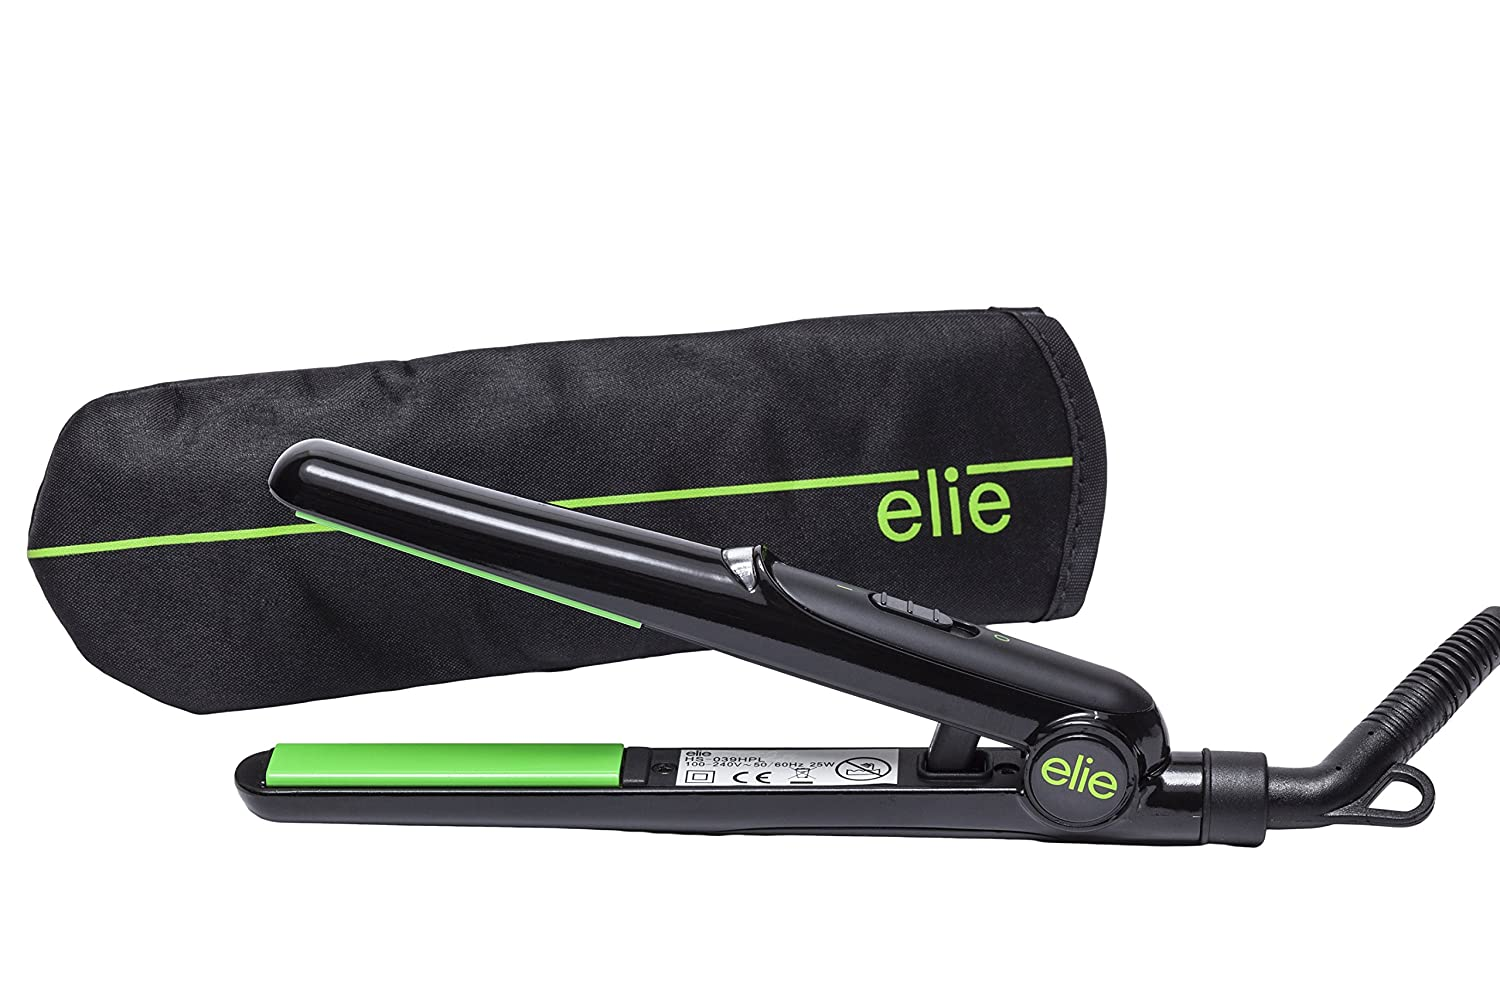 elie slim hair straighteners for short hair